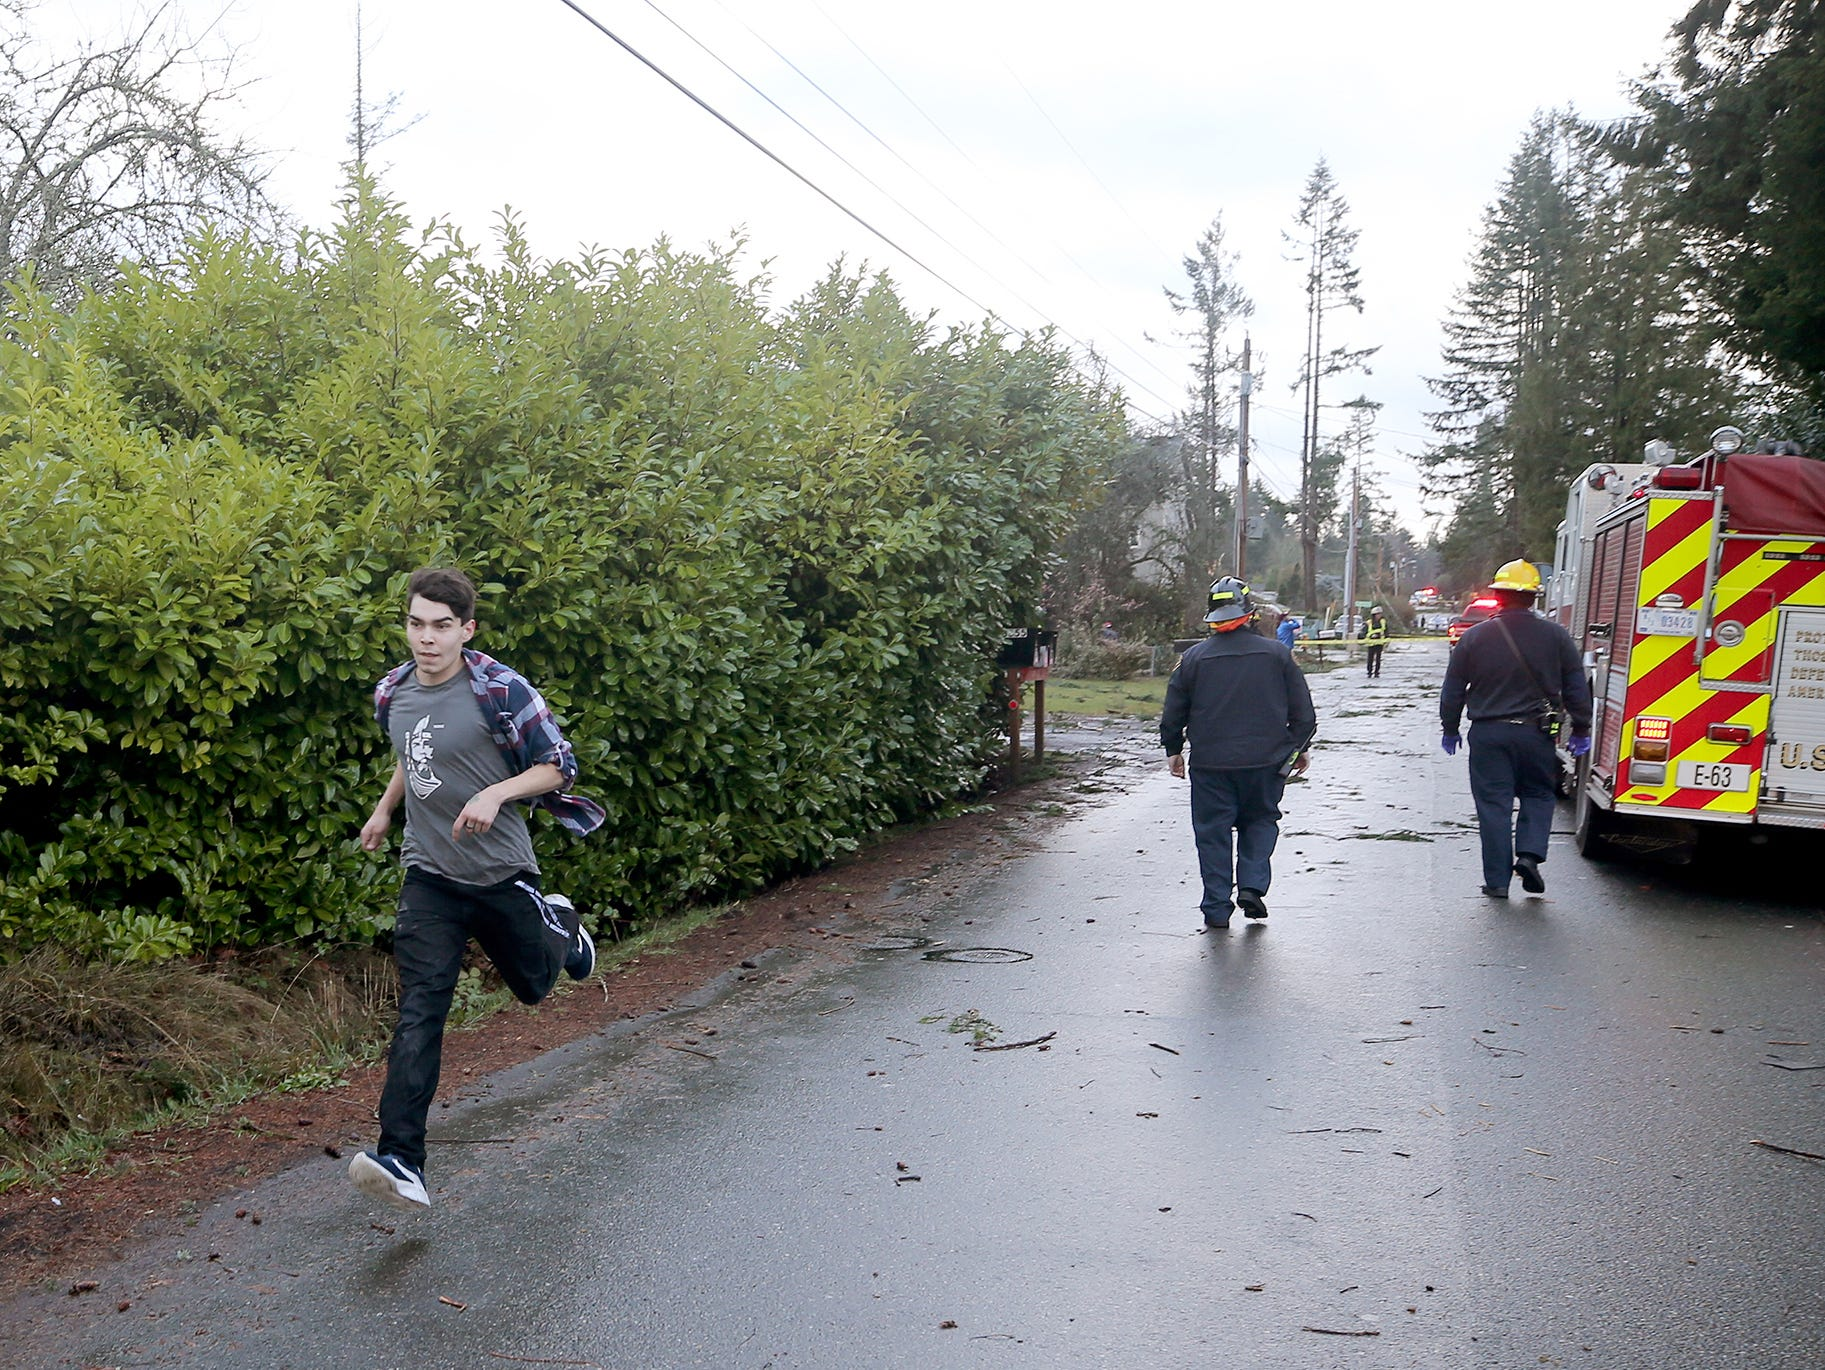 The Harris Rd SE neighborhood after a tornado came through Port Orchard on the afternoon of Tuesday, December 18, 2018. The path was over Bethel near Walmart, and Safeway. He filmed the tornado from the Safeway.